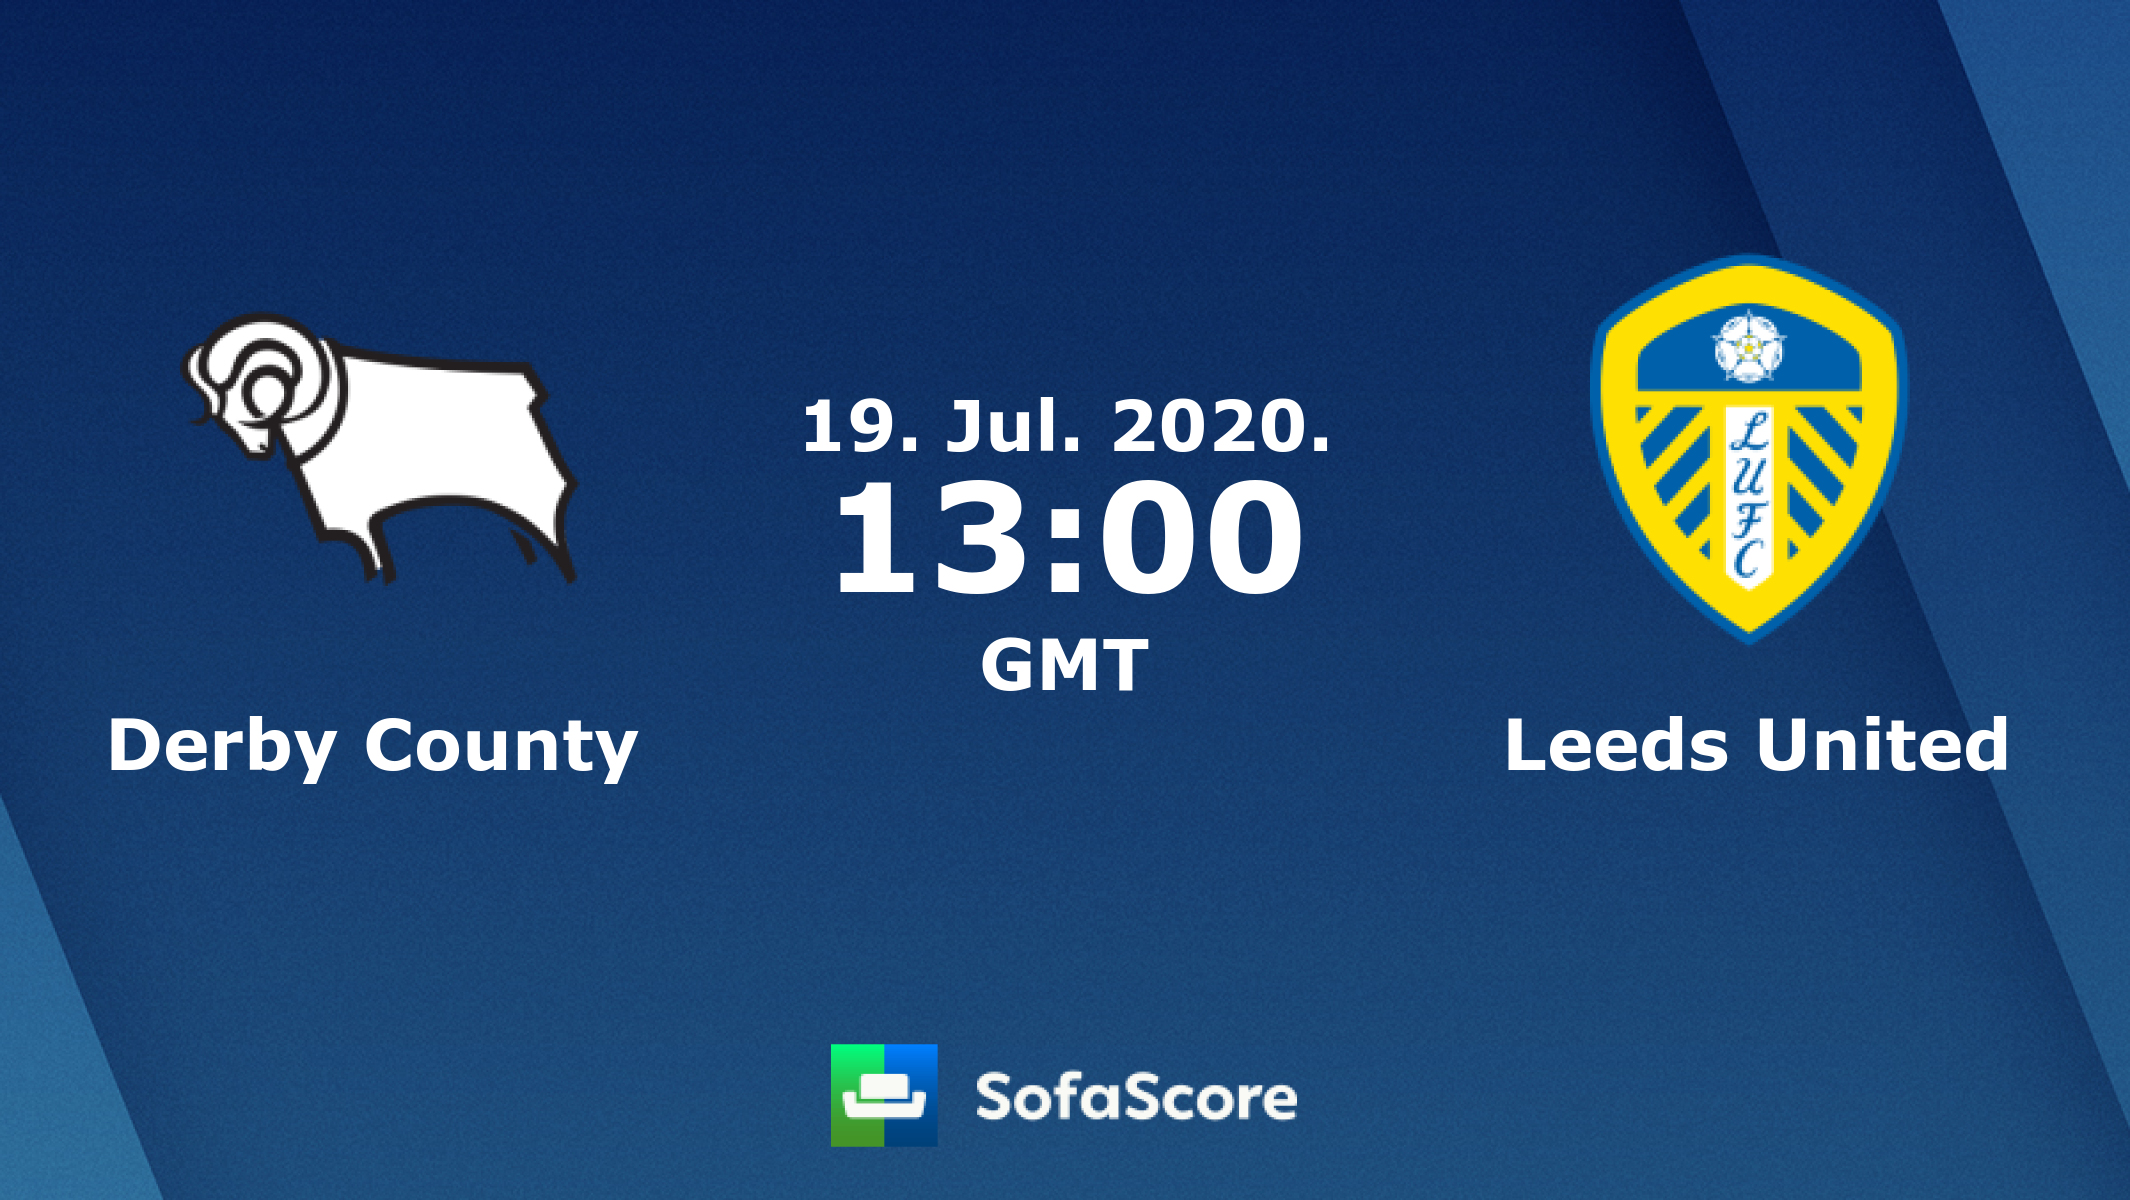 derby county vs leeds united live streaming free